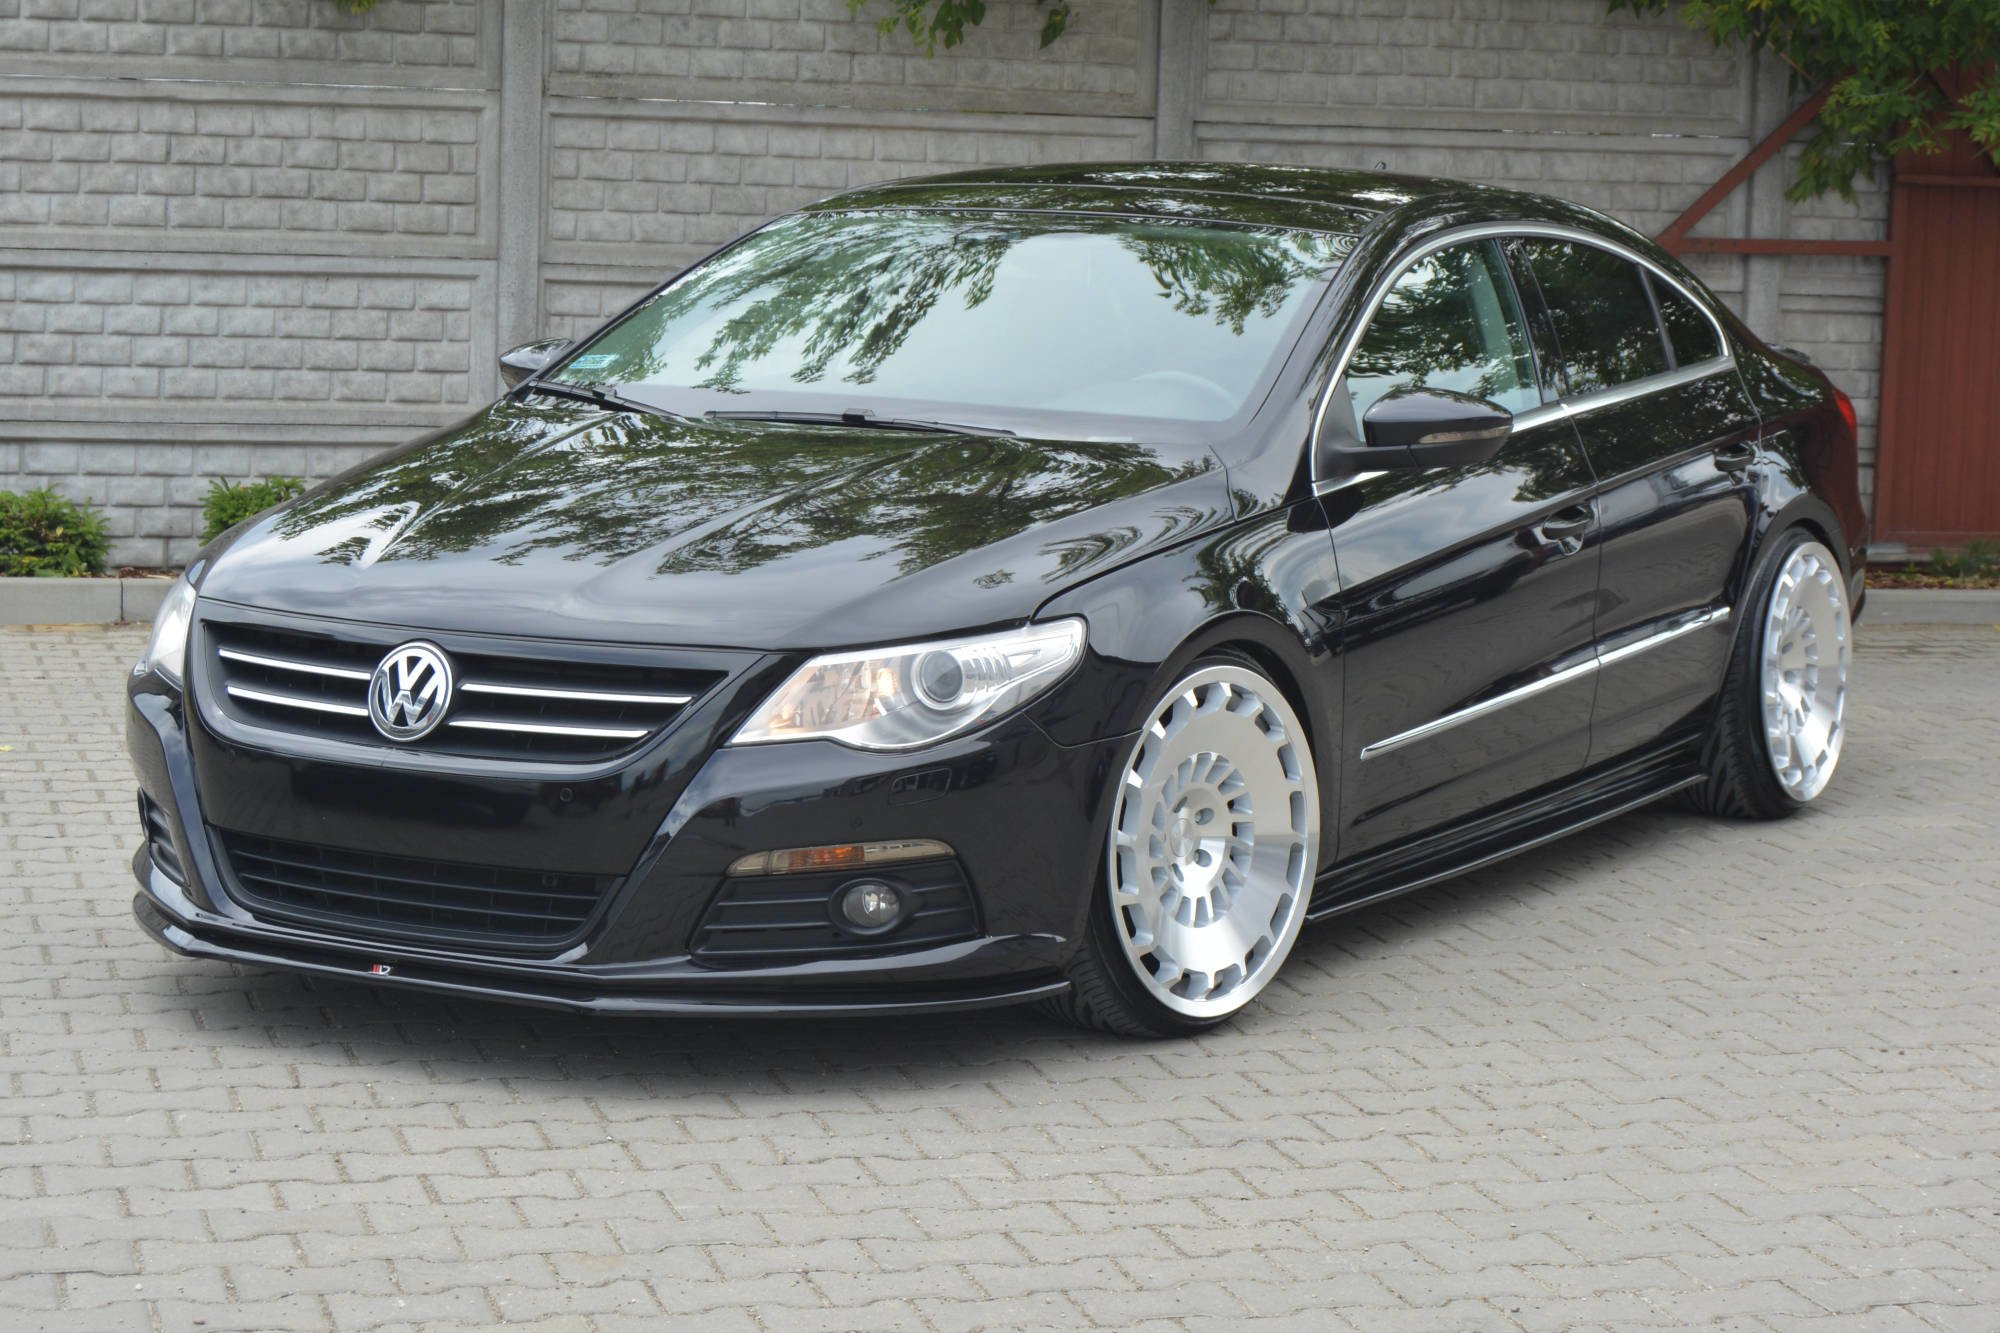 Front Splitter V 2 Vw Passat Cc Standard Textured Our Offer Volkswagen Cc Maxton Design